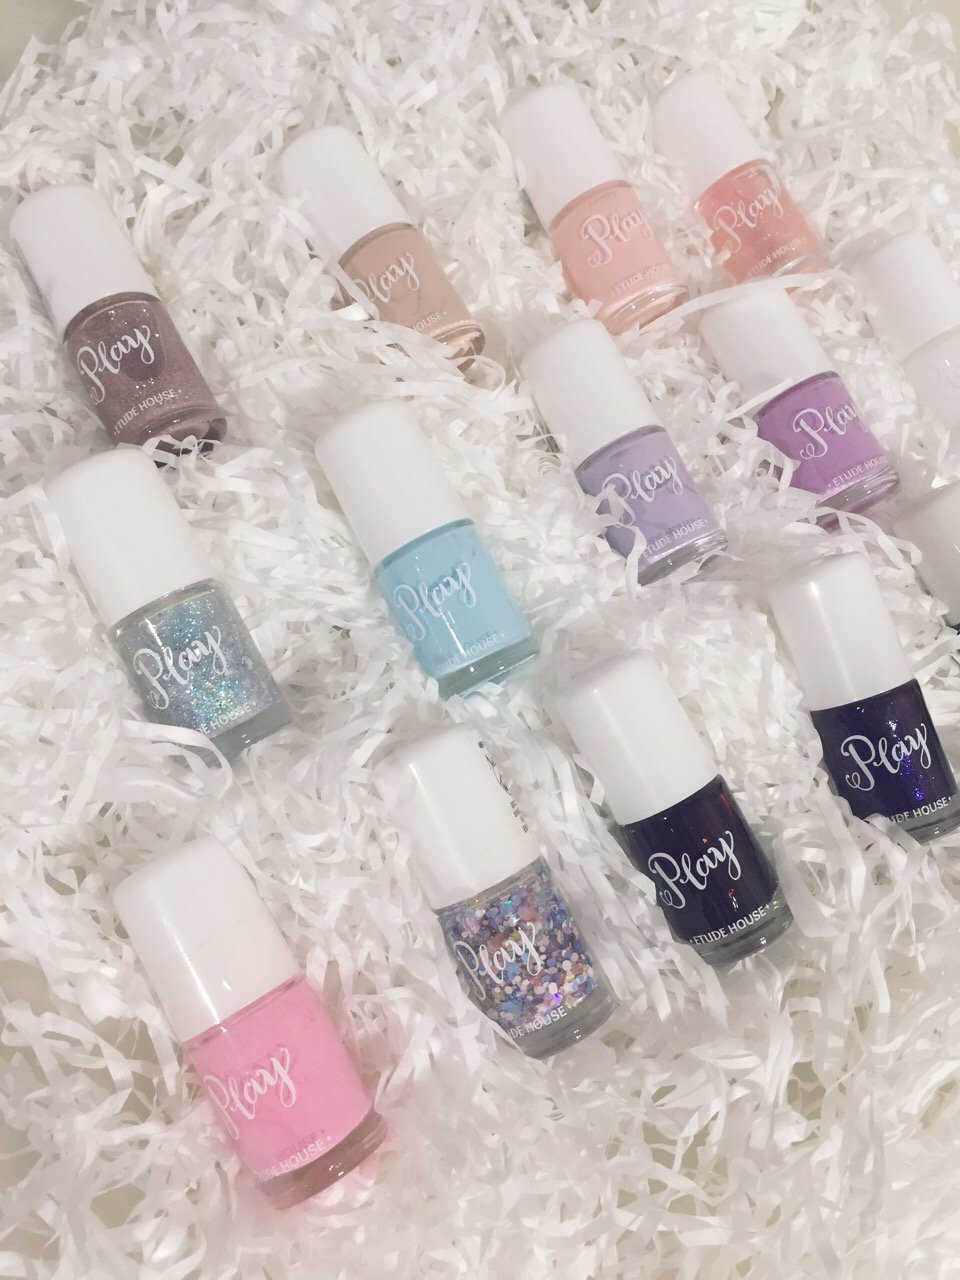 REVIEW: Etude House Play Nails – thebeautyverdict